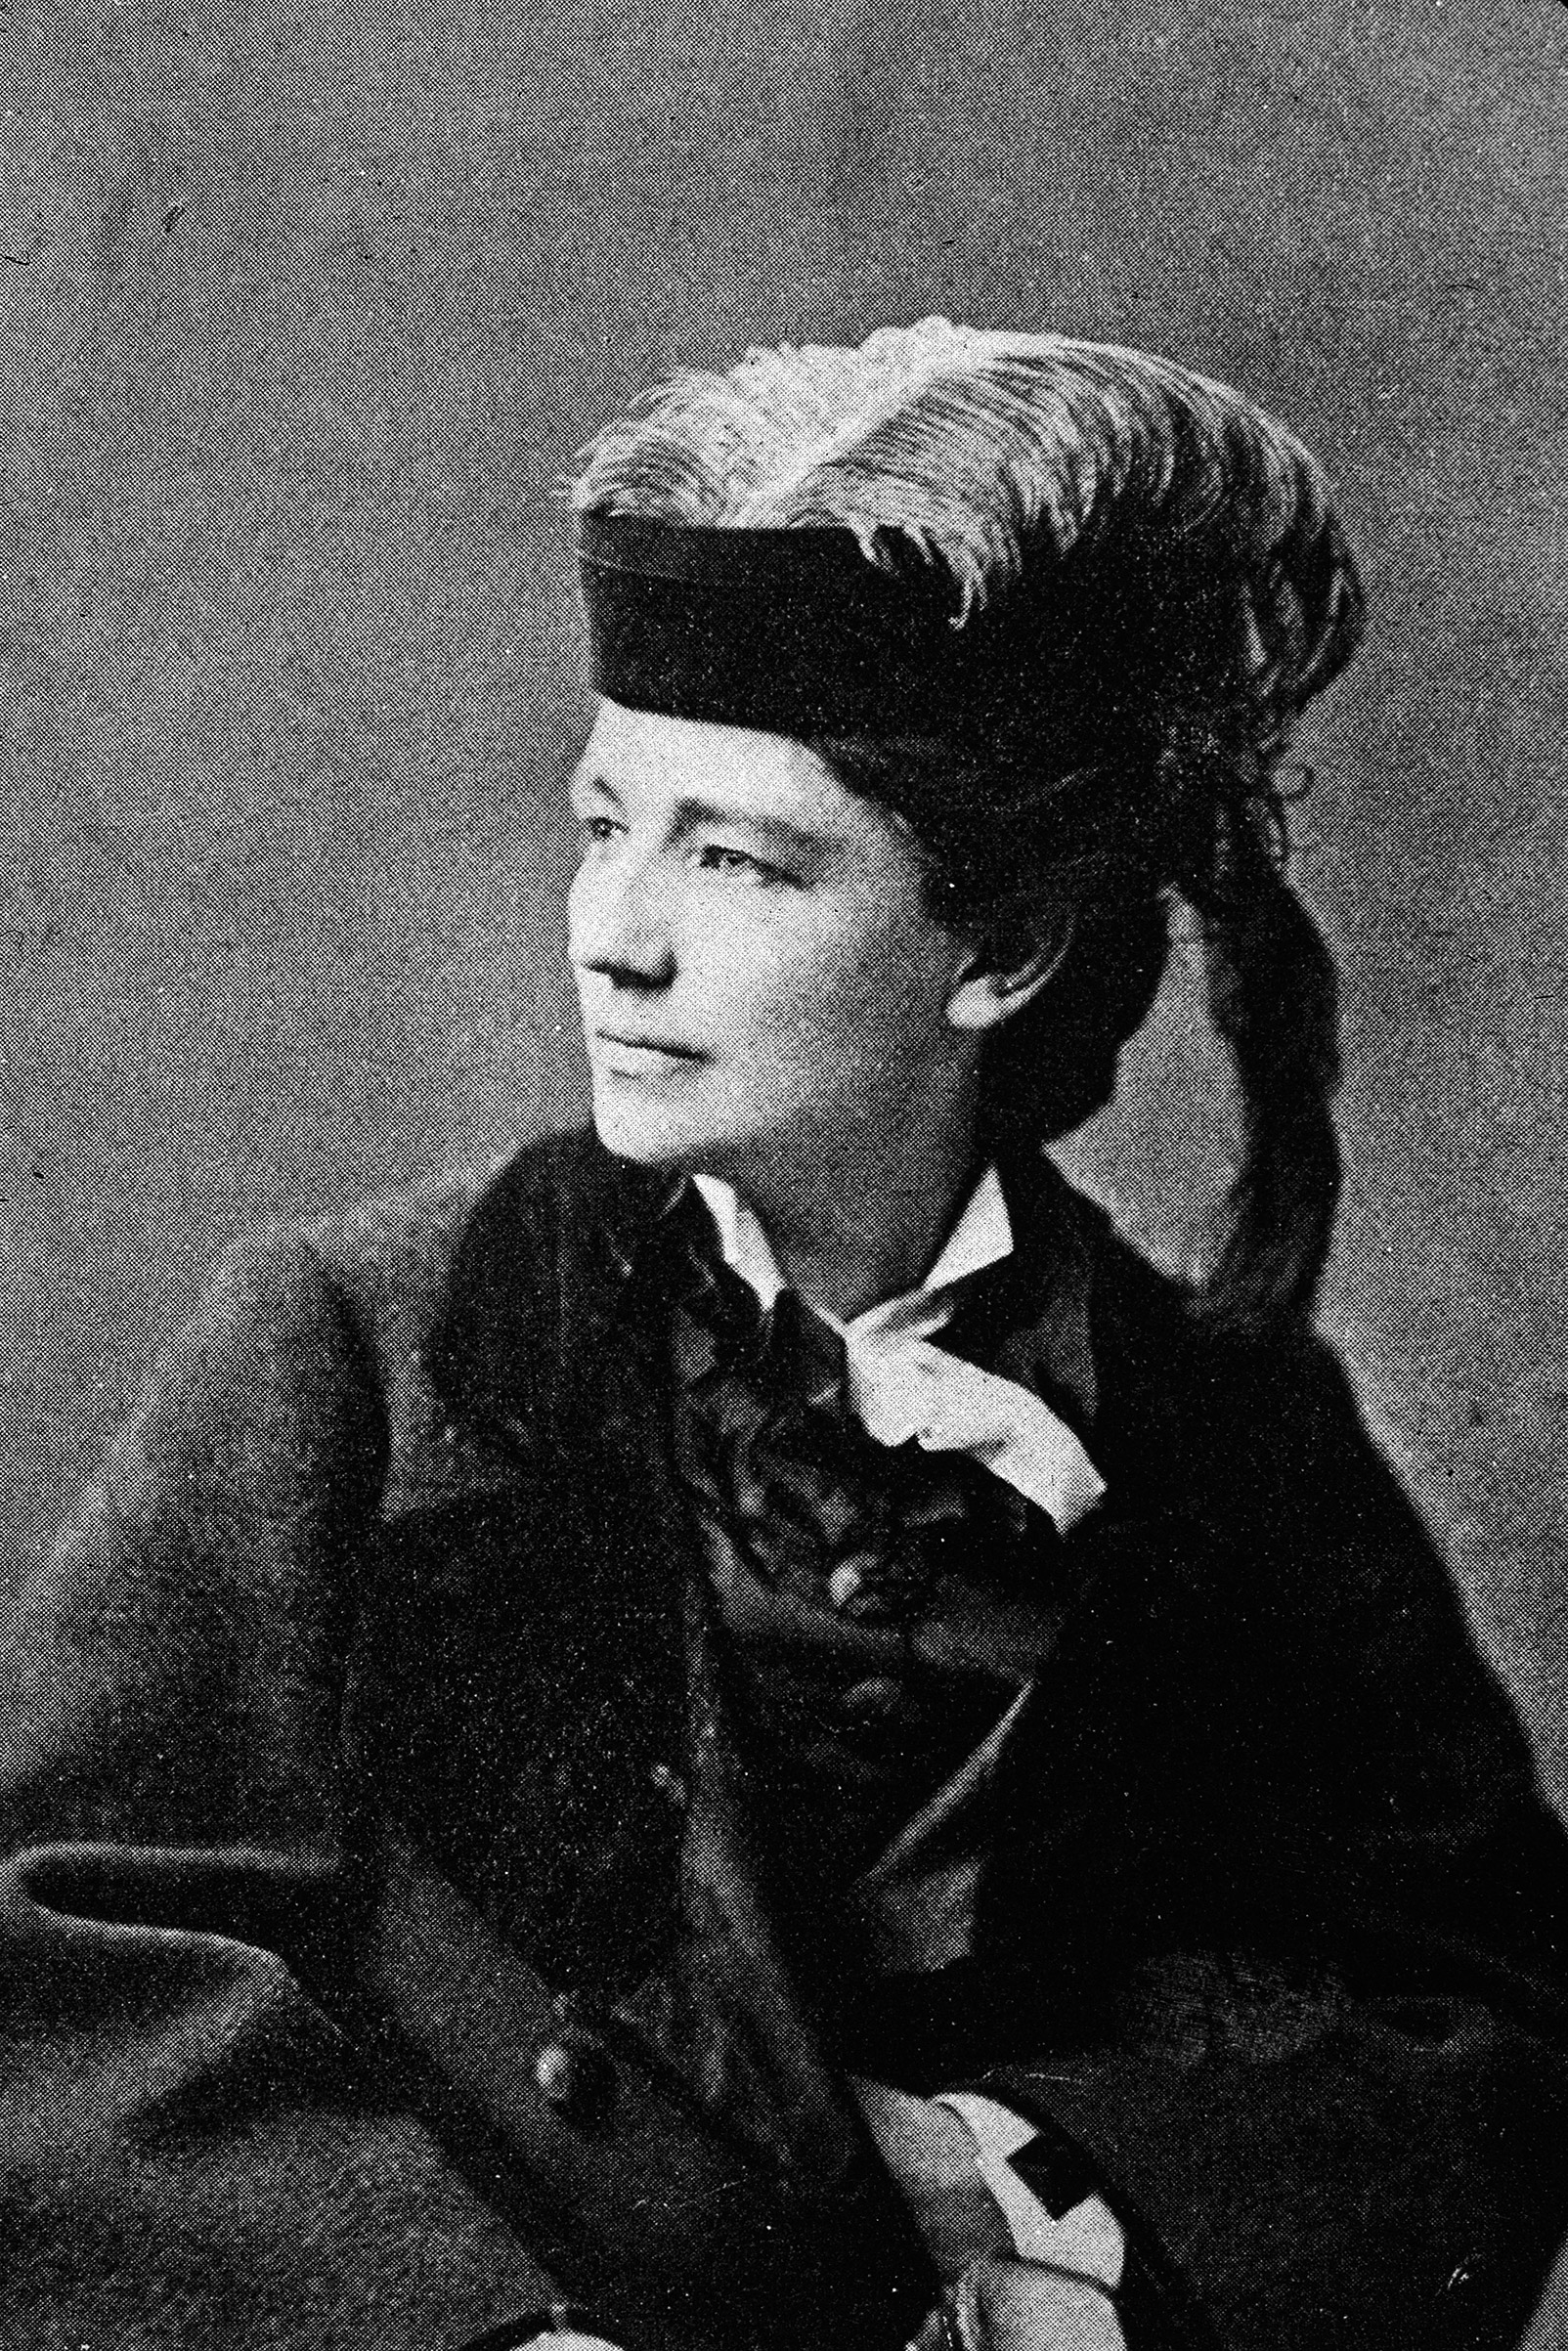 VICTORIA WOODHULL became the first woman to run for president in 1872.